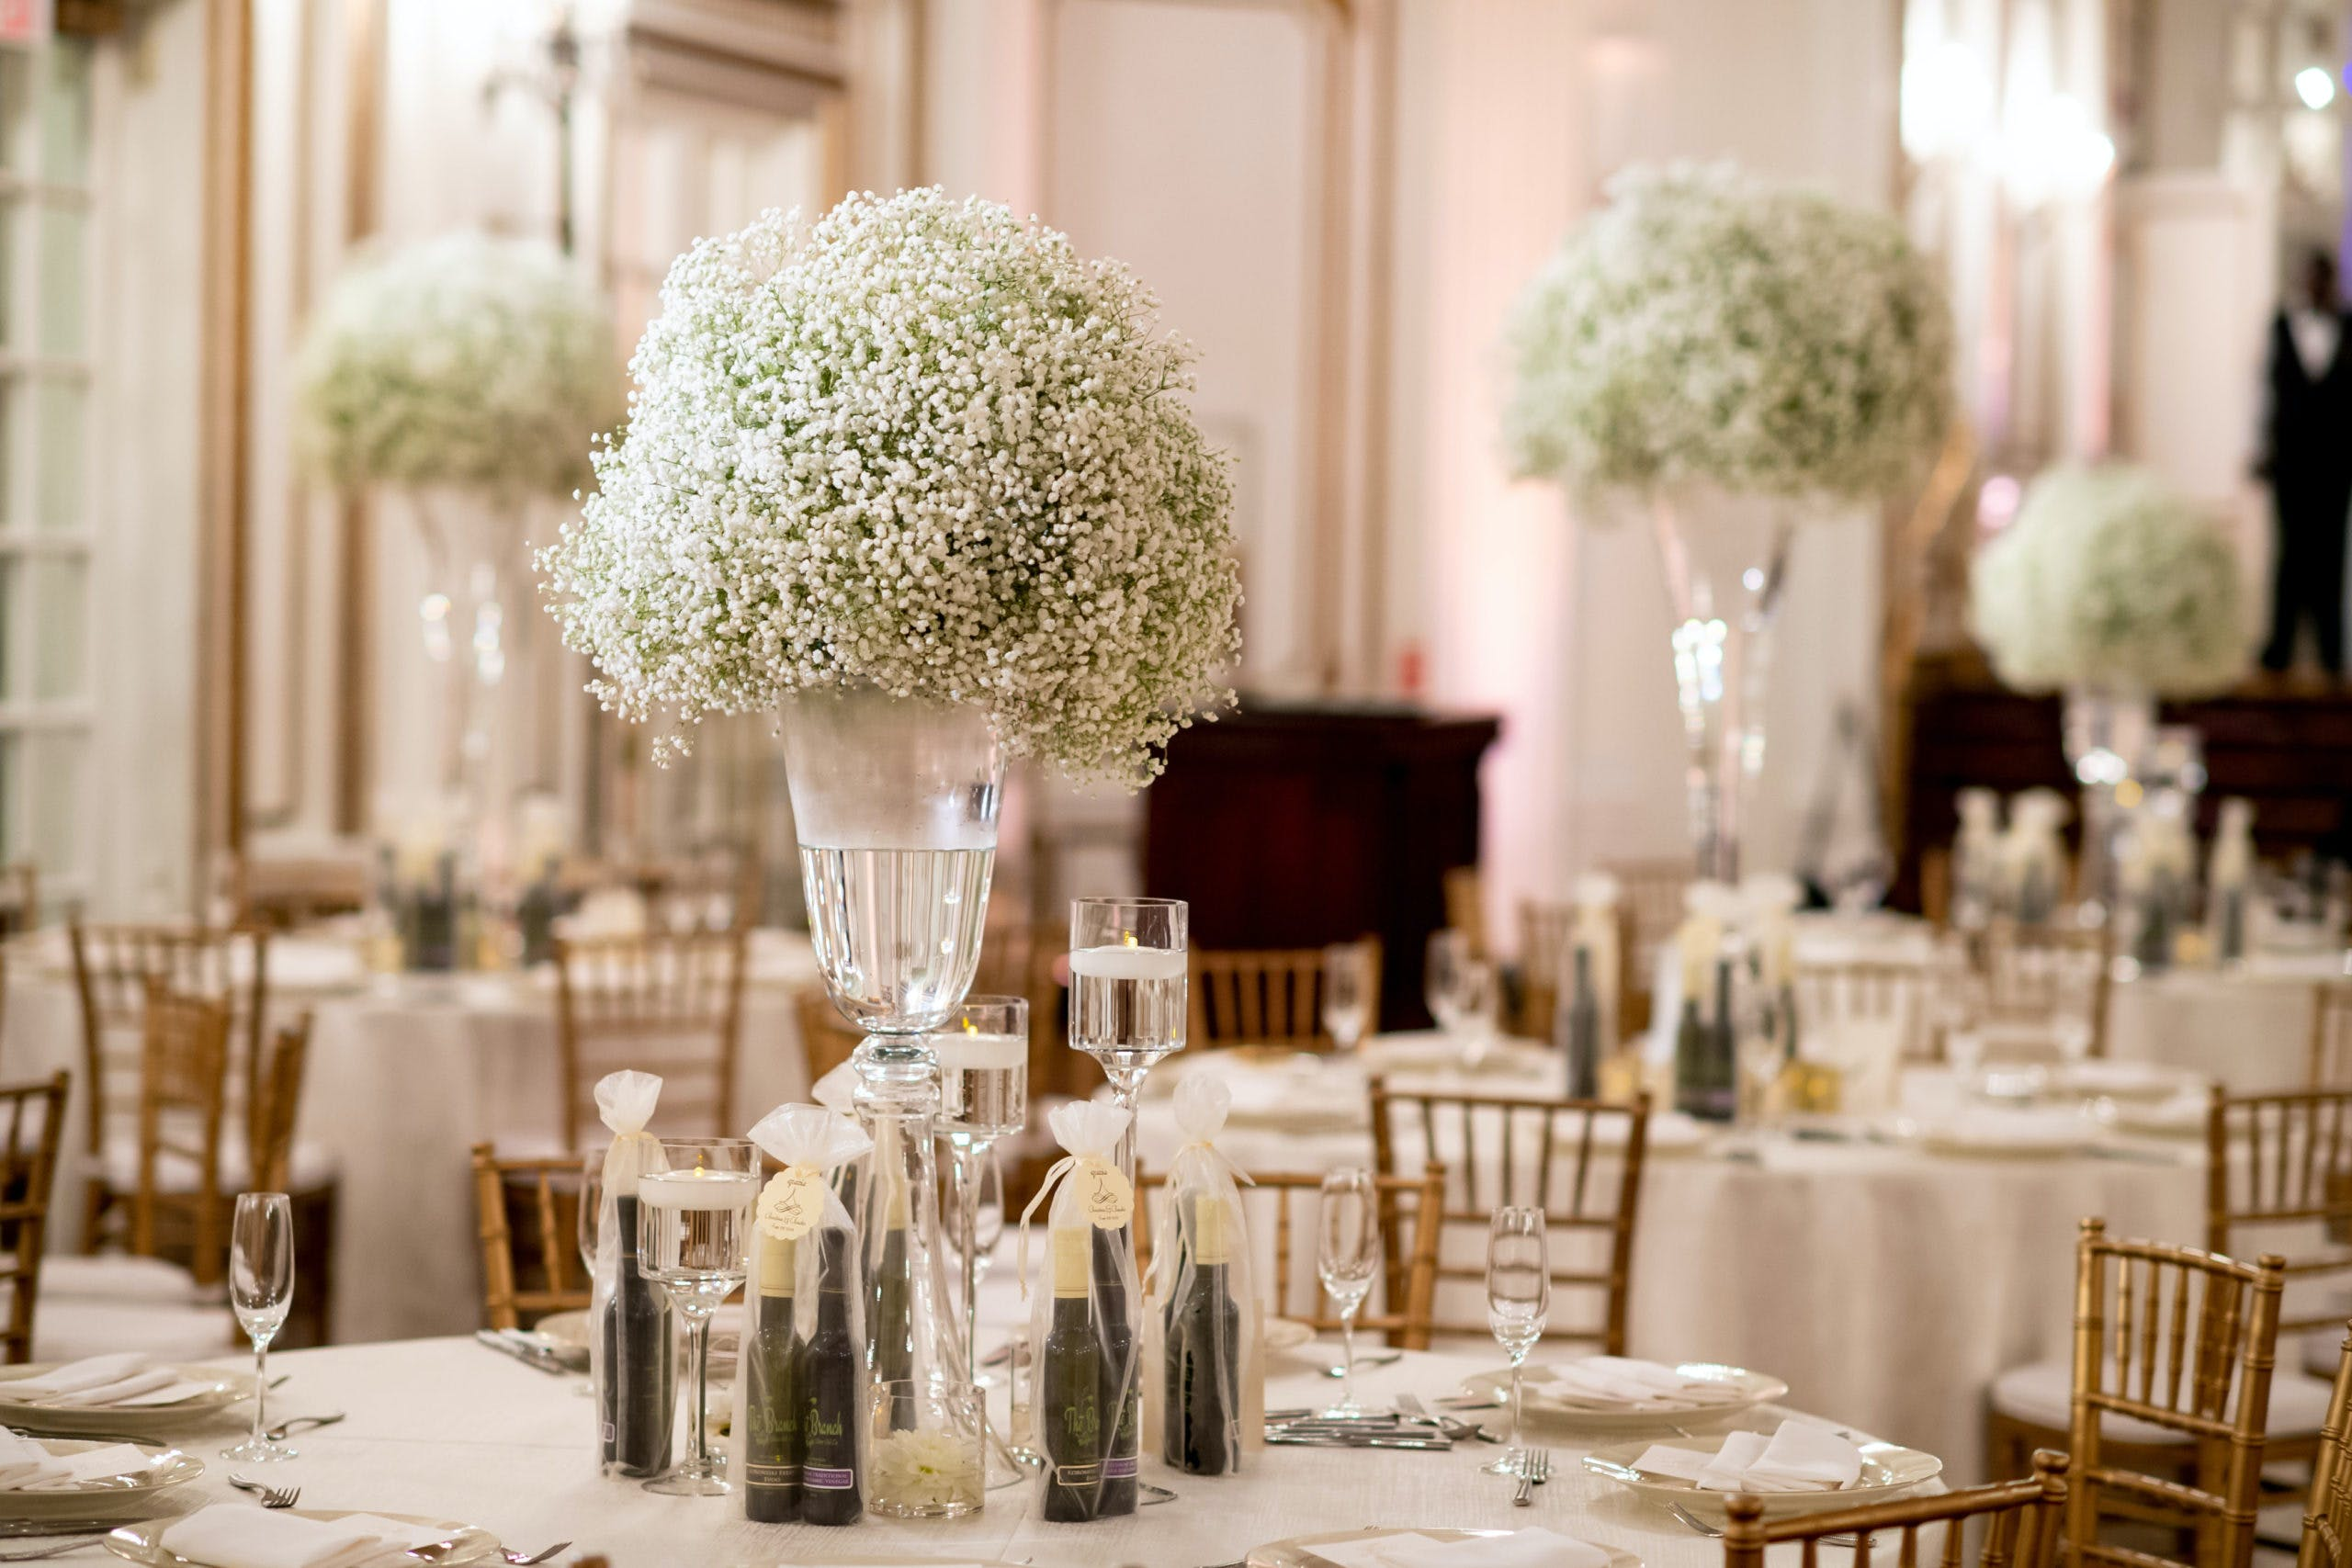 Bouquets of Baby's Breath Wedding Centerpieces At Varying Heights   PartySlate